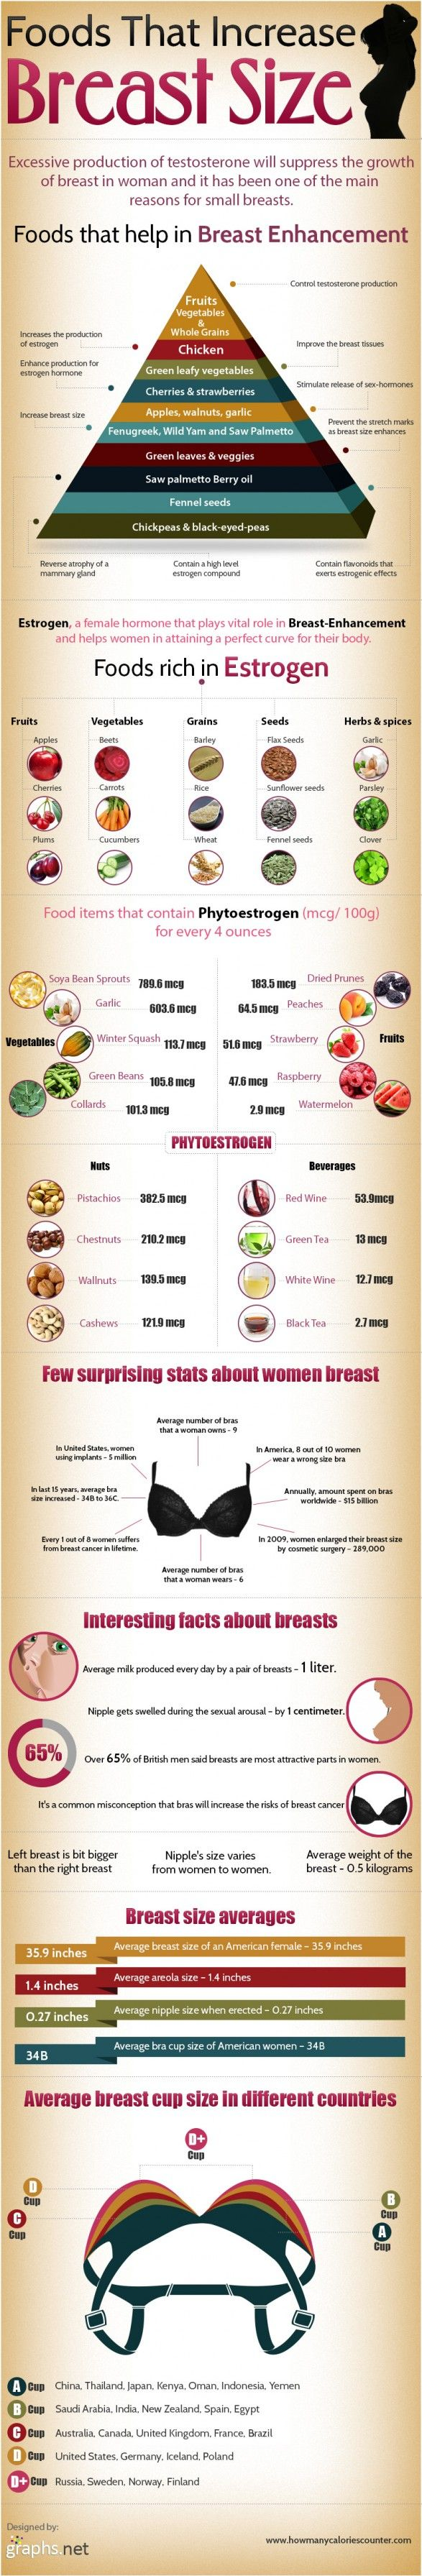 Breast enlargement operation cost-5681